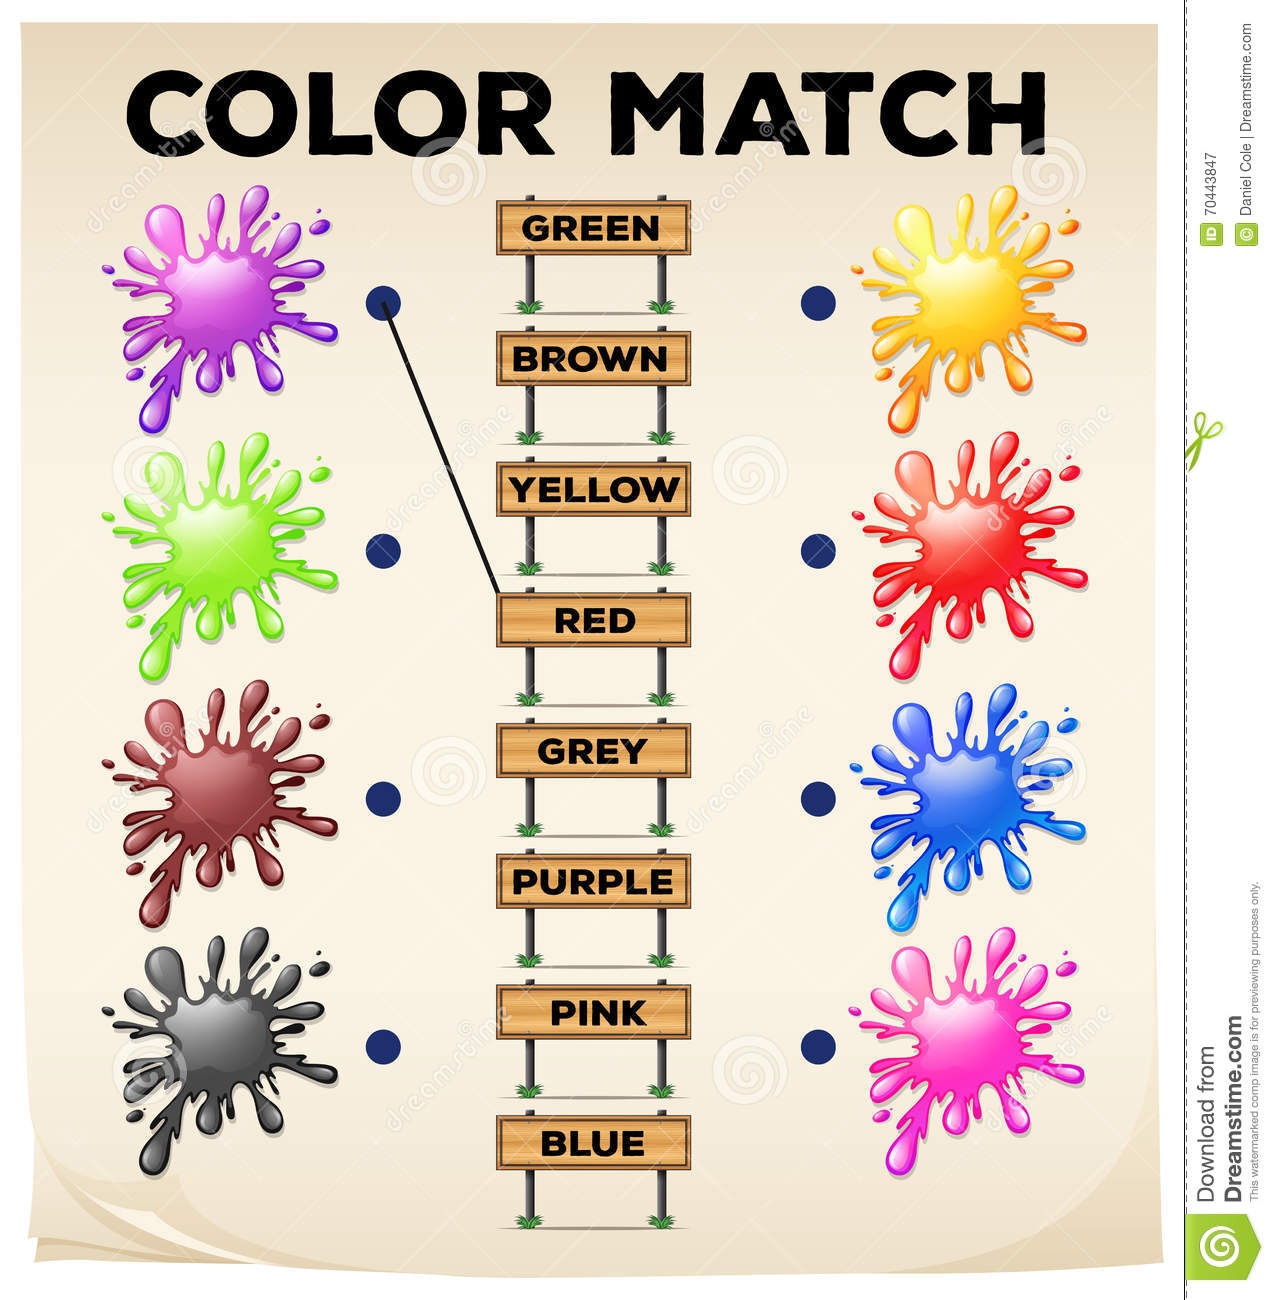 Matching Worksheet With Colors And Words Stock